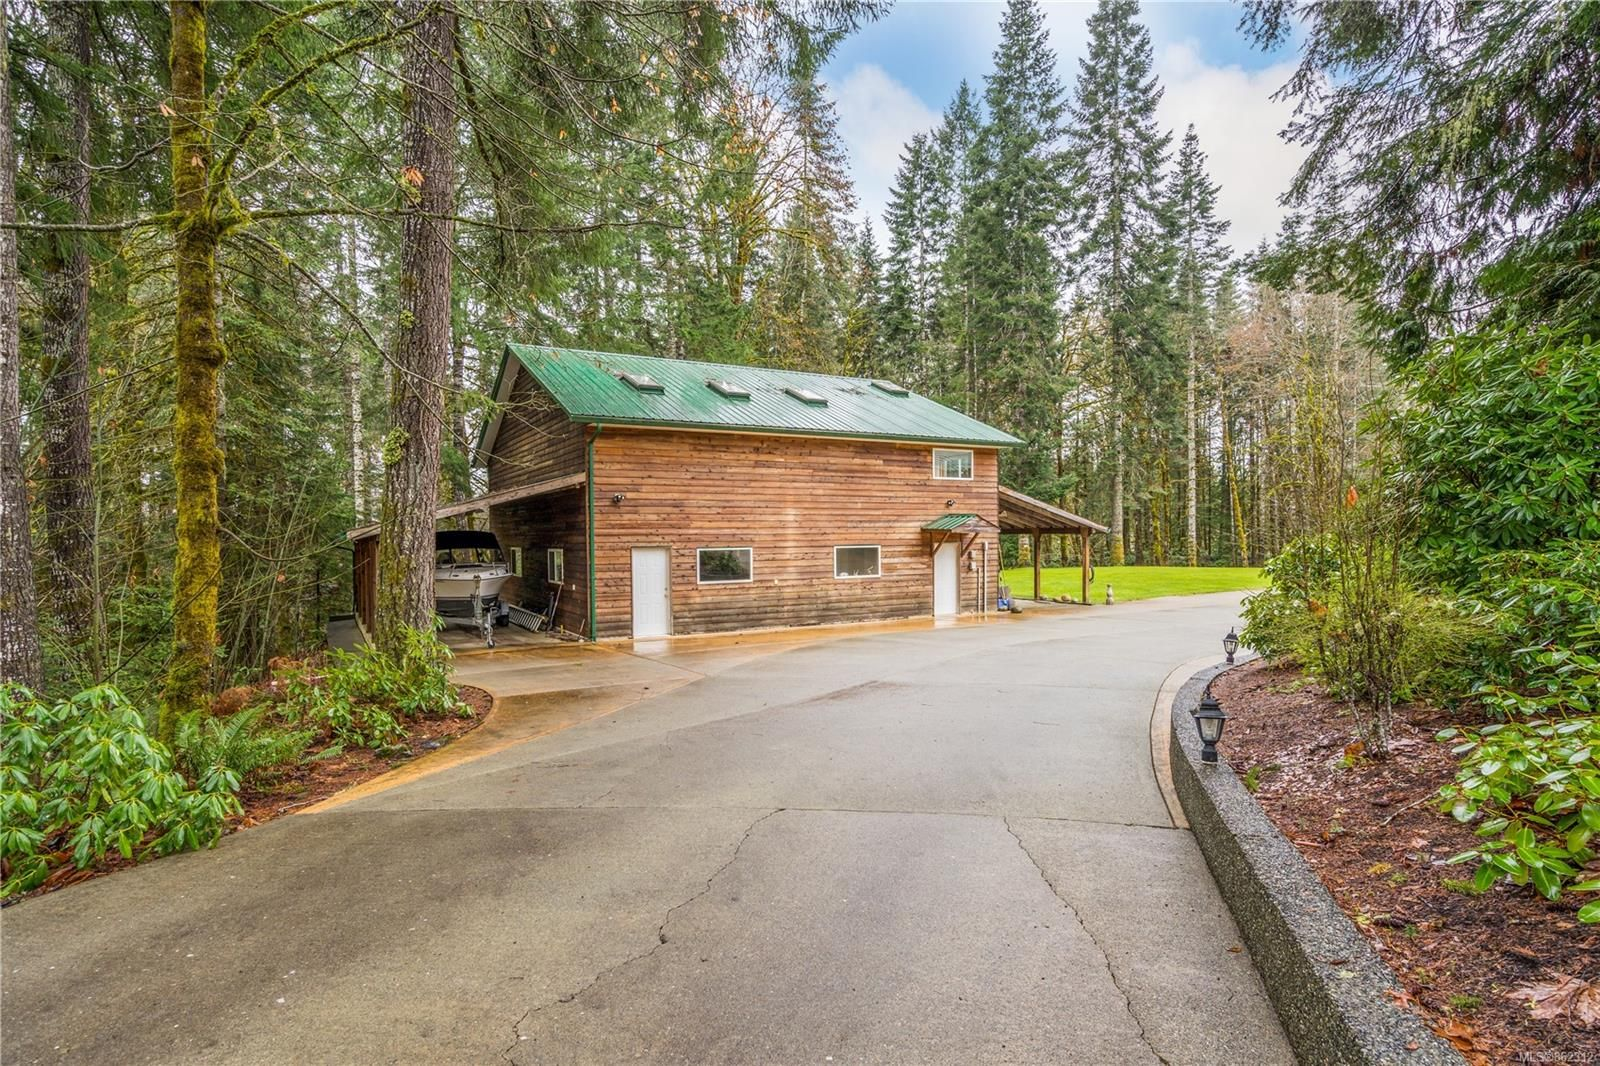 Photo 15: Photos: 7380 Plymouth Rd in : PA Alberni Valley House for sale (Port Alberni)  : MLS®# 862312